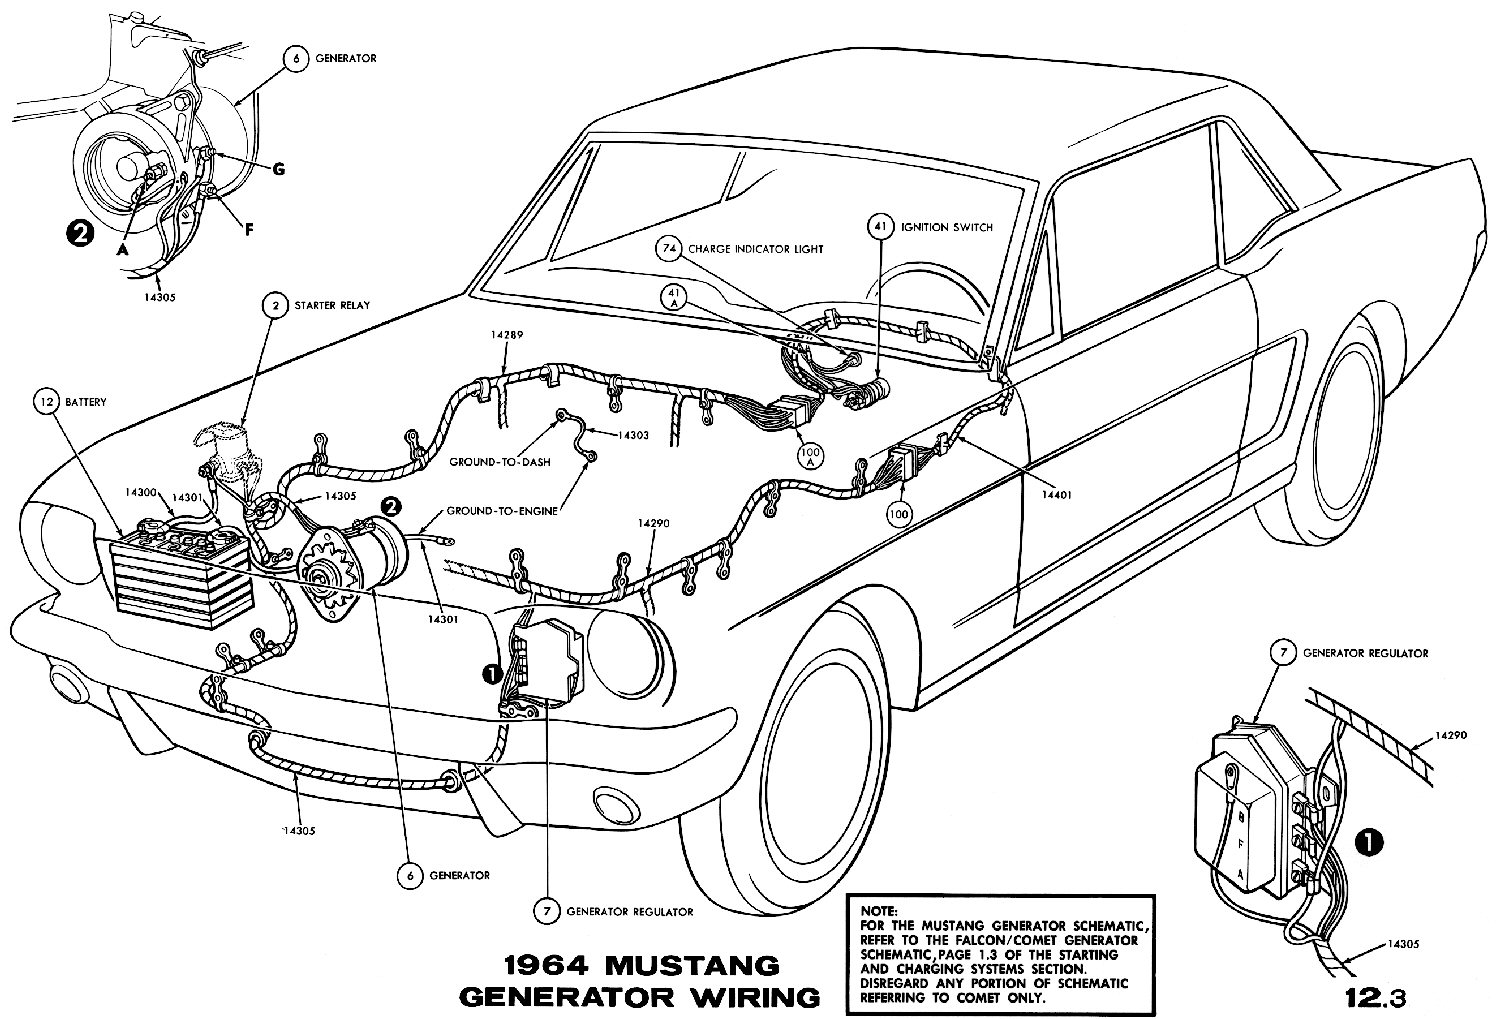 1964 Mustang Wiring Diagram Everything About 1966 Mercury Comet Diagrams Average Joe Restoration Rh Averagejoerestoration Com 1965 Color For Lighting